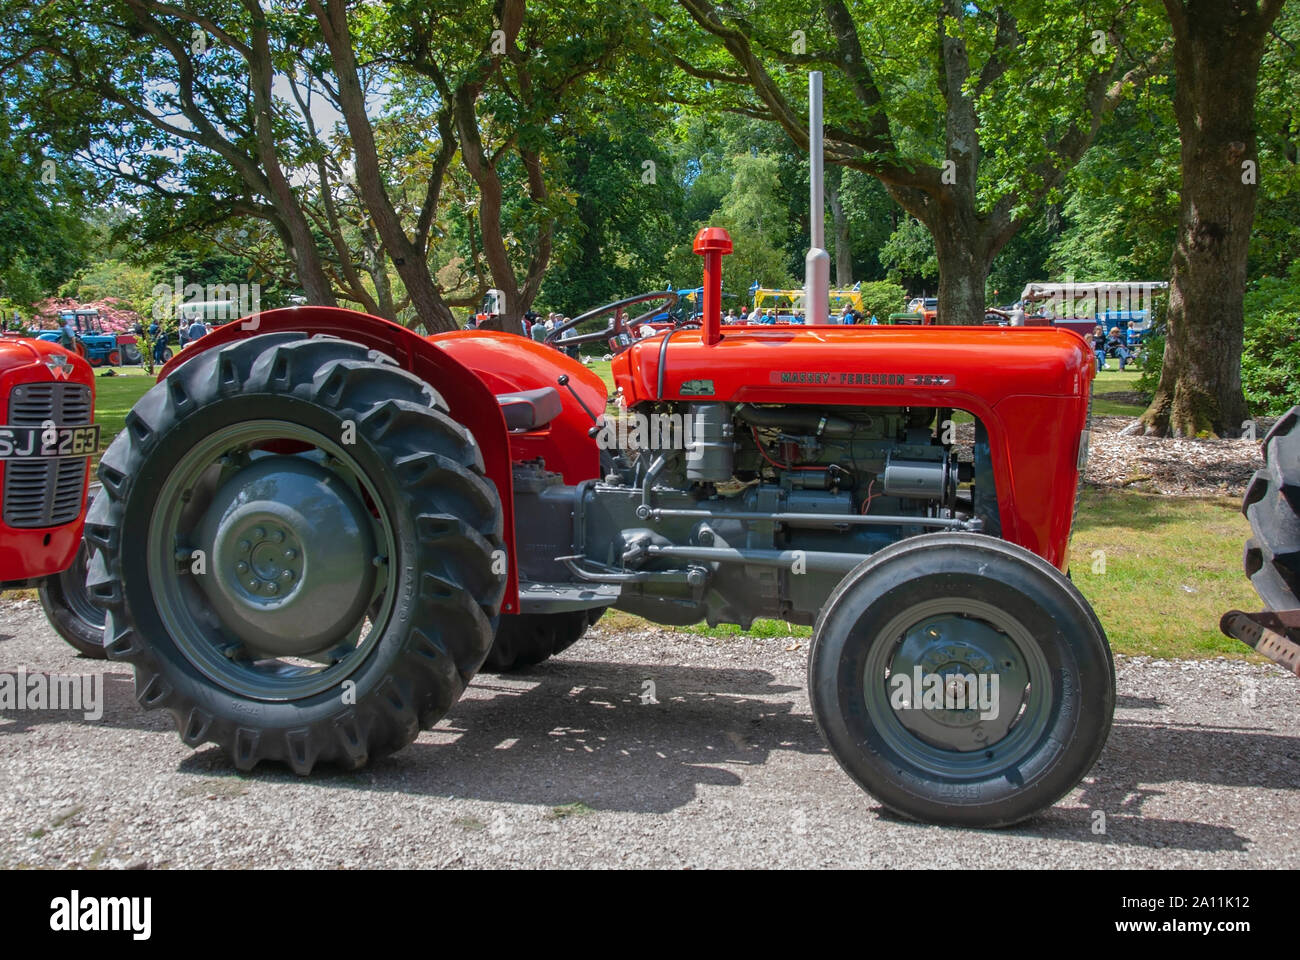 Immaculate 1963 Red Grey Massey Ferguson 35X Model Tractor